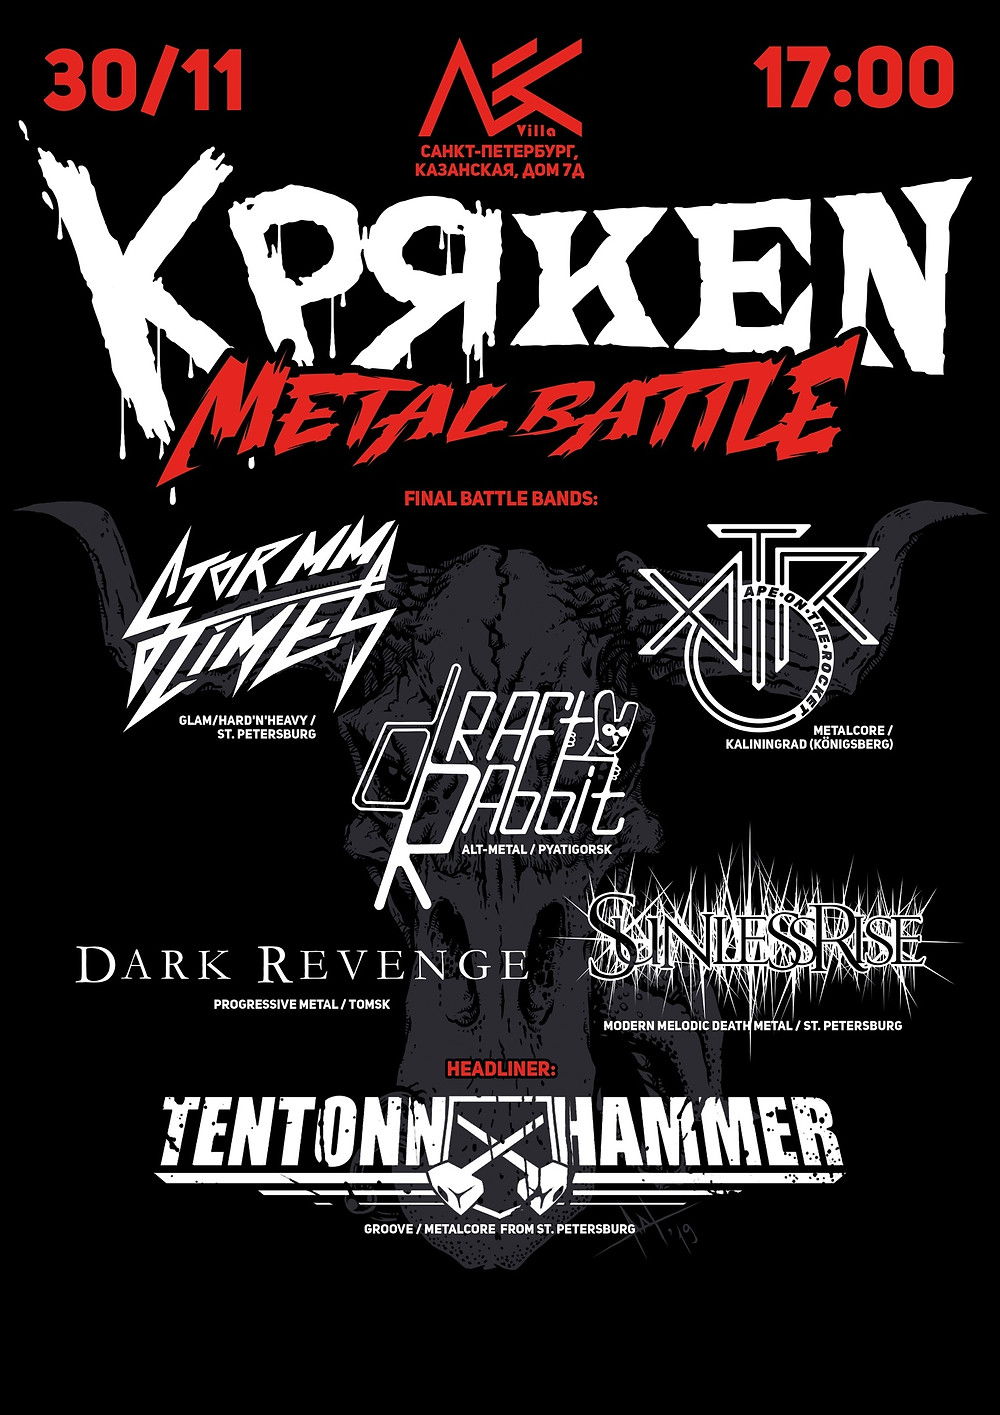 КРЯKEN METAL BATTLE